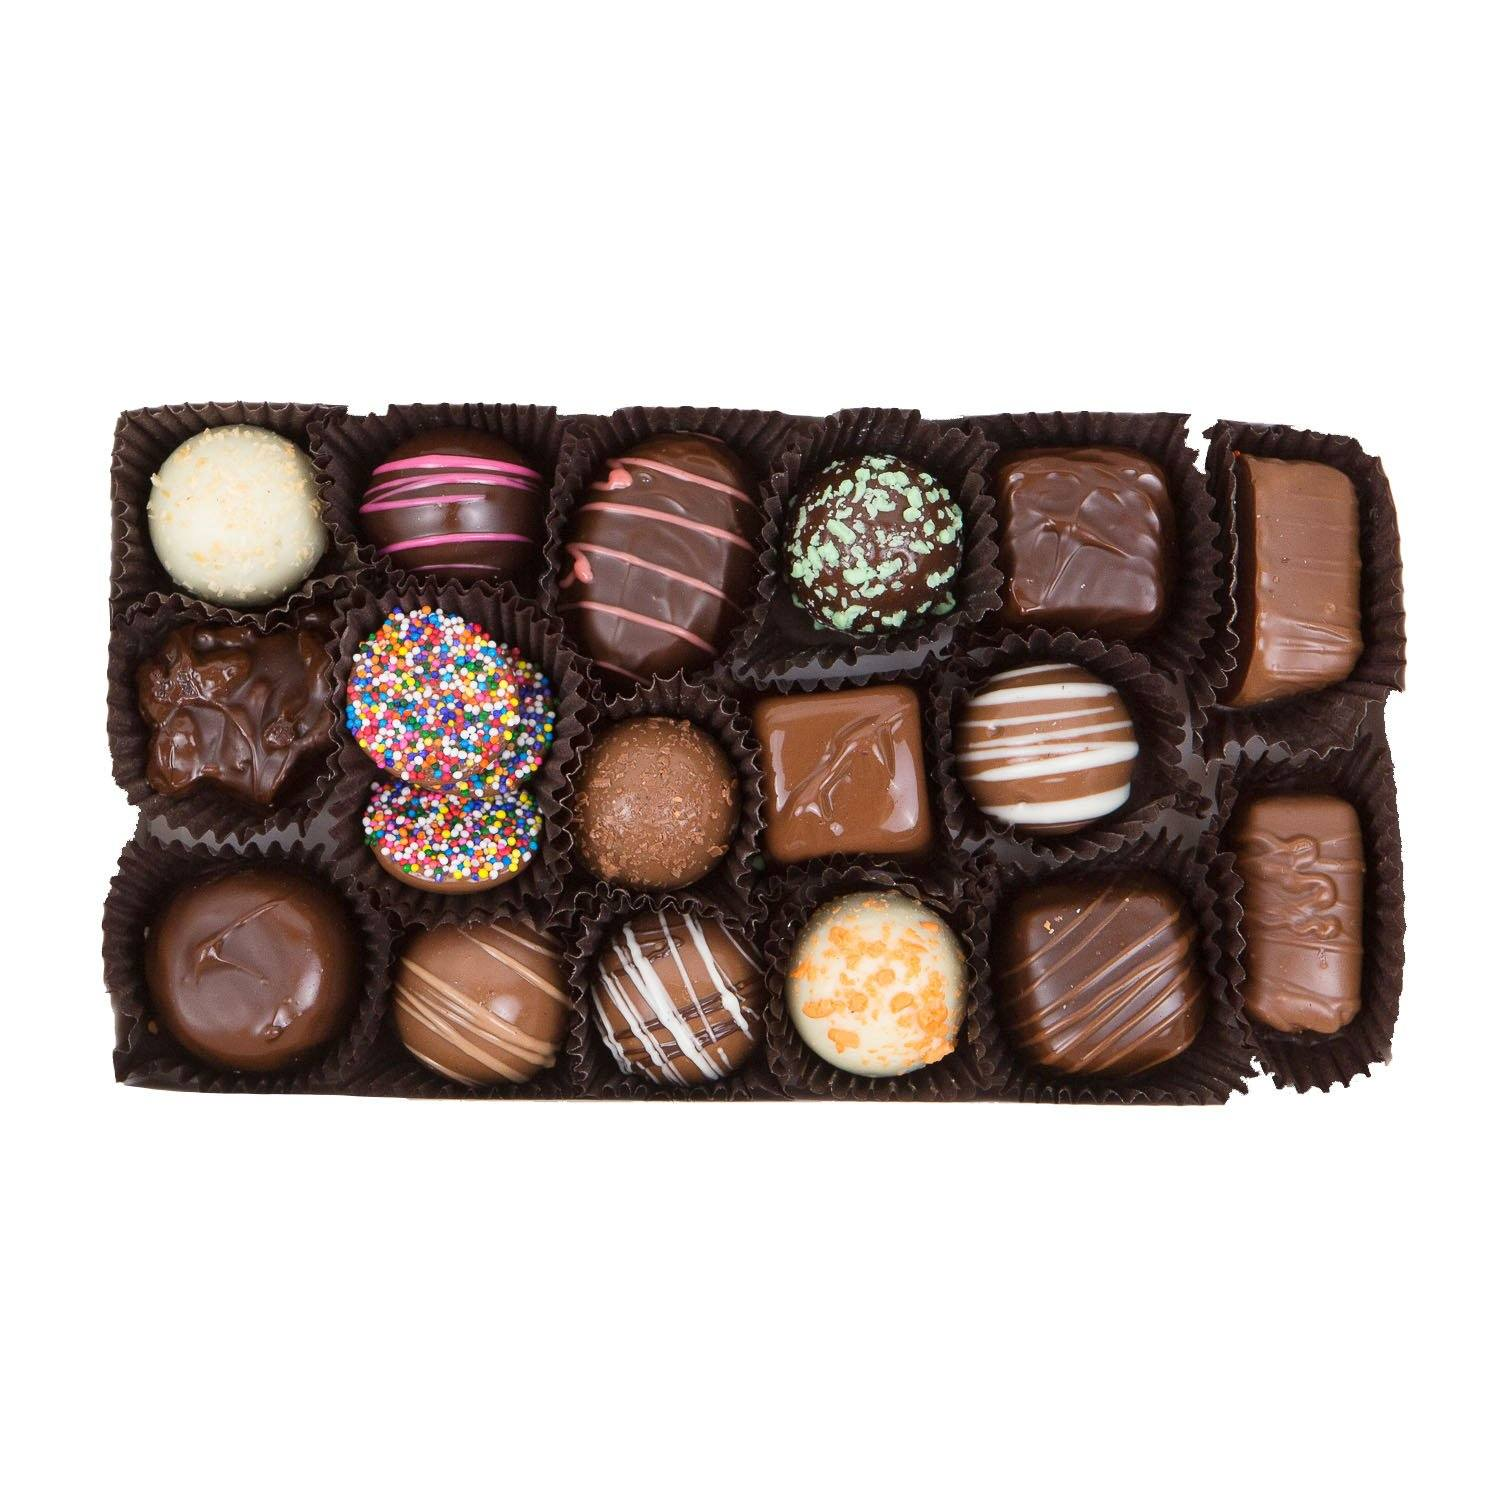 Gifts Under $50 - Assorted Chocolate Gift Box - Jackie's Chocolate (1487130918947)